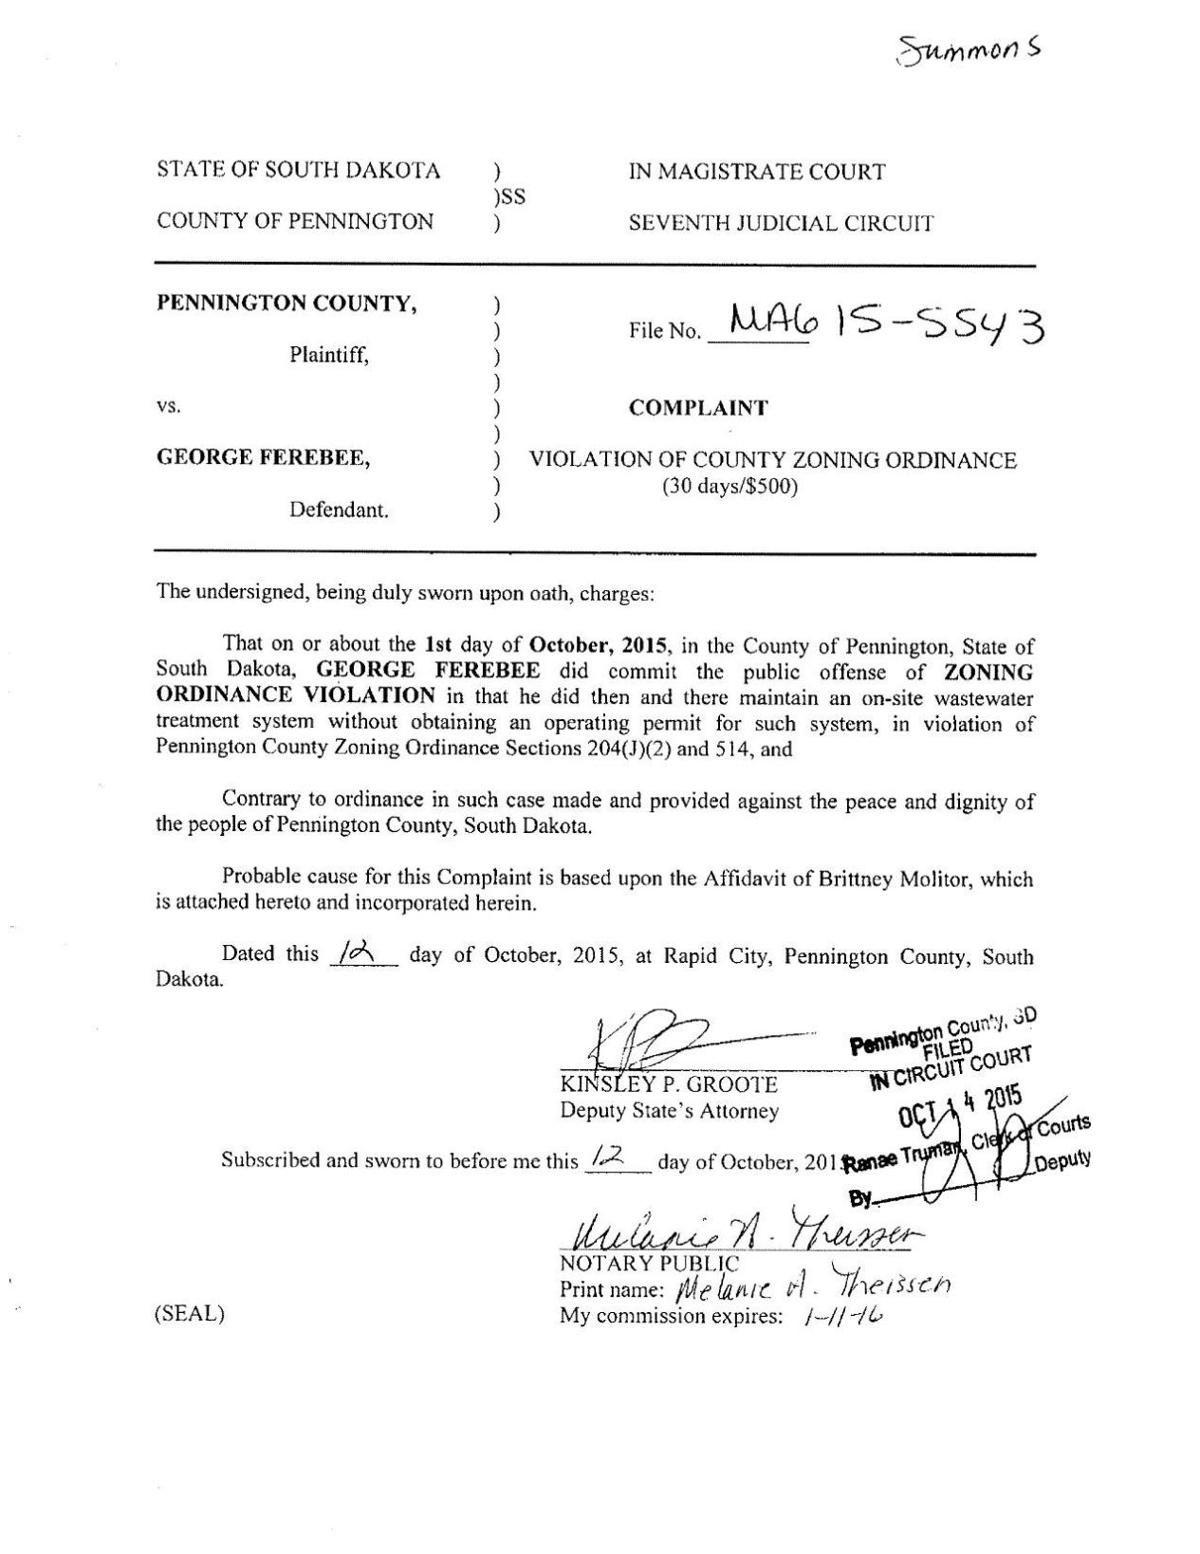 Pennington County v. George Ferebee complaint and affidavit